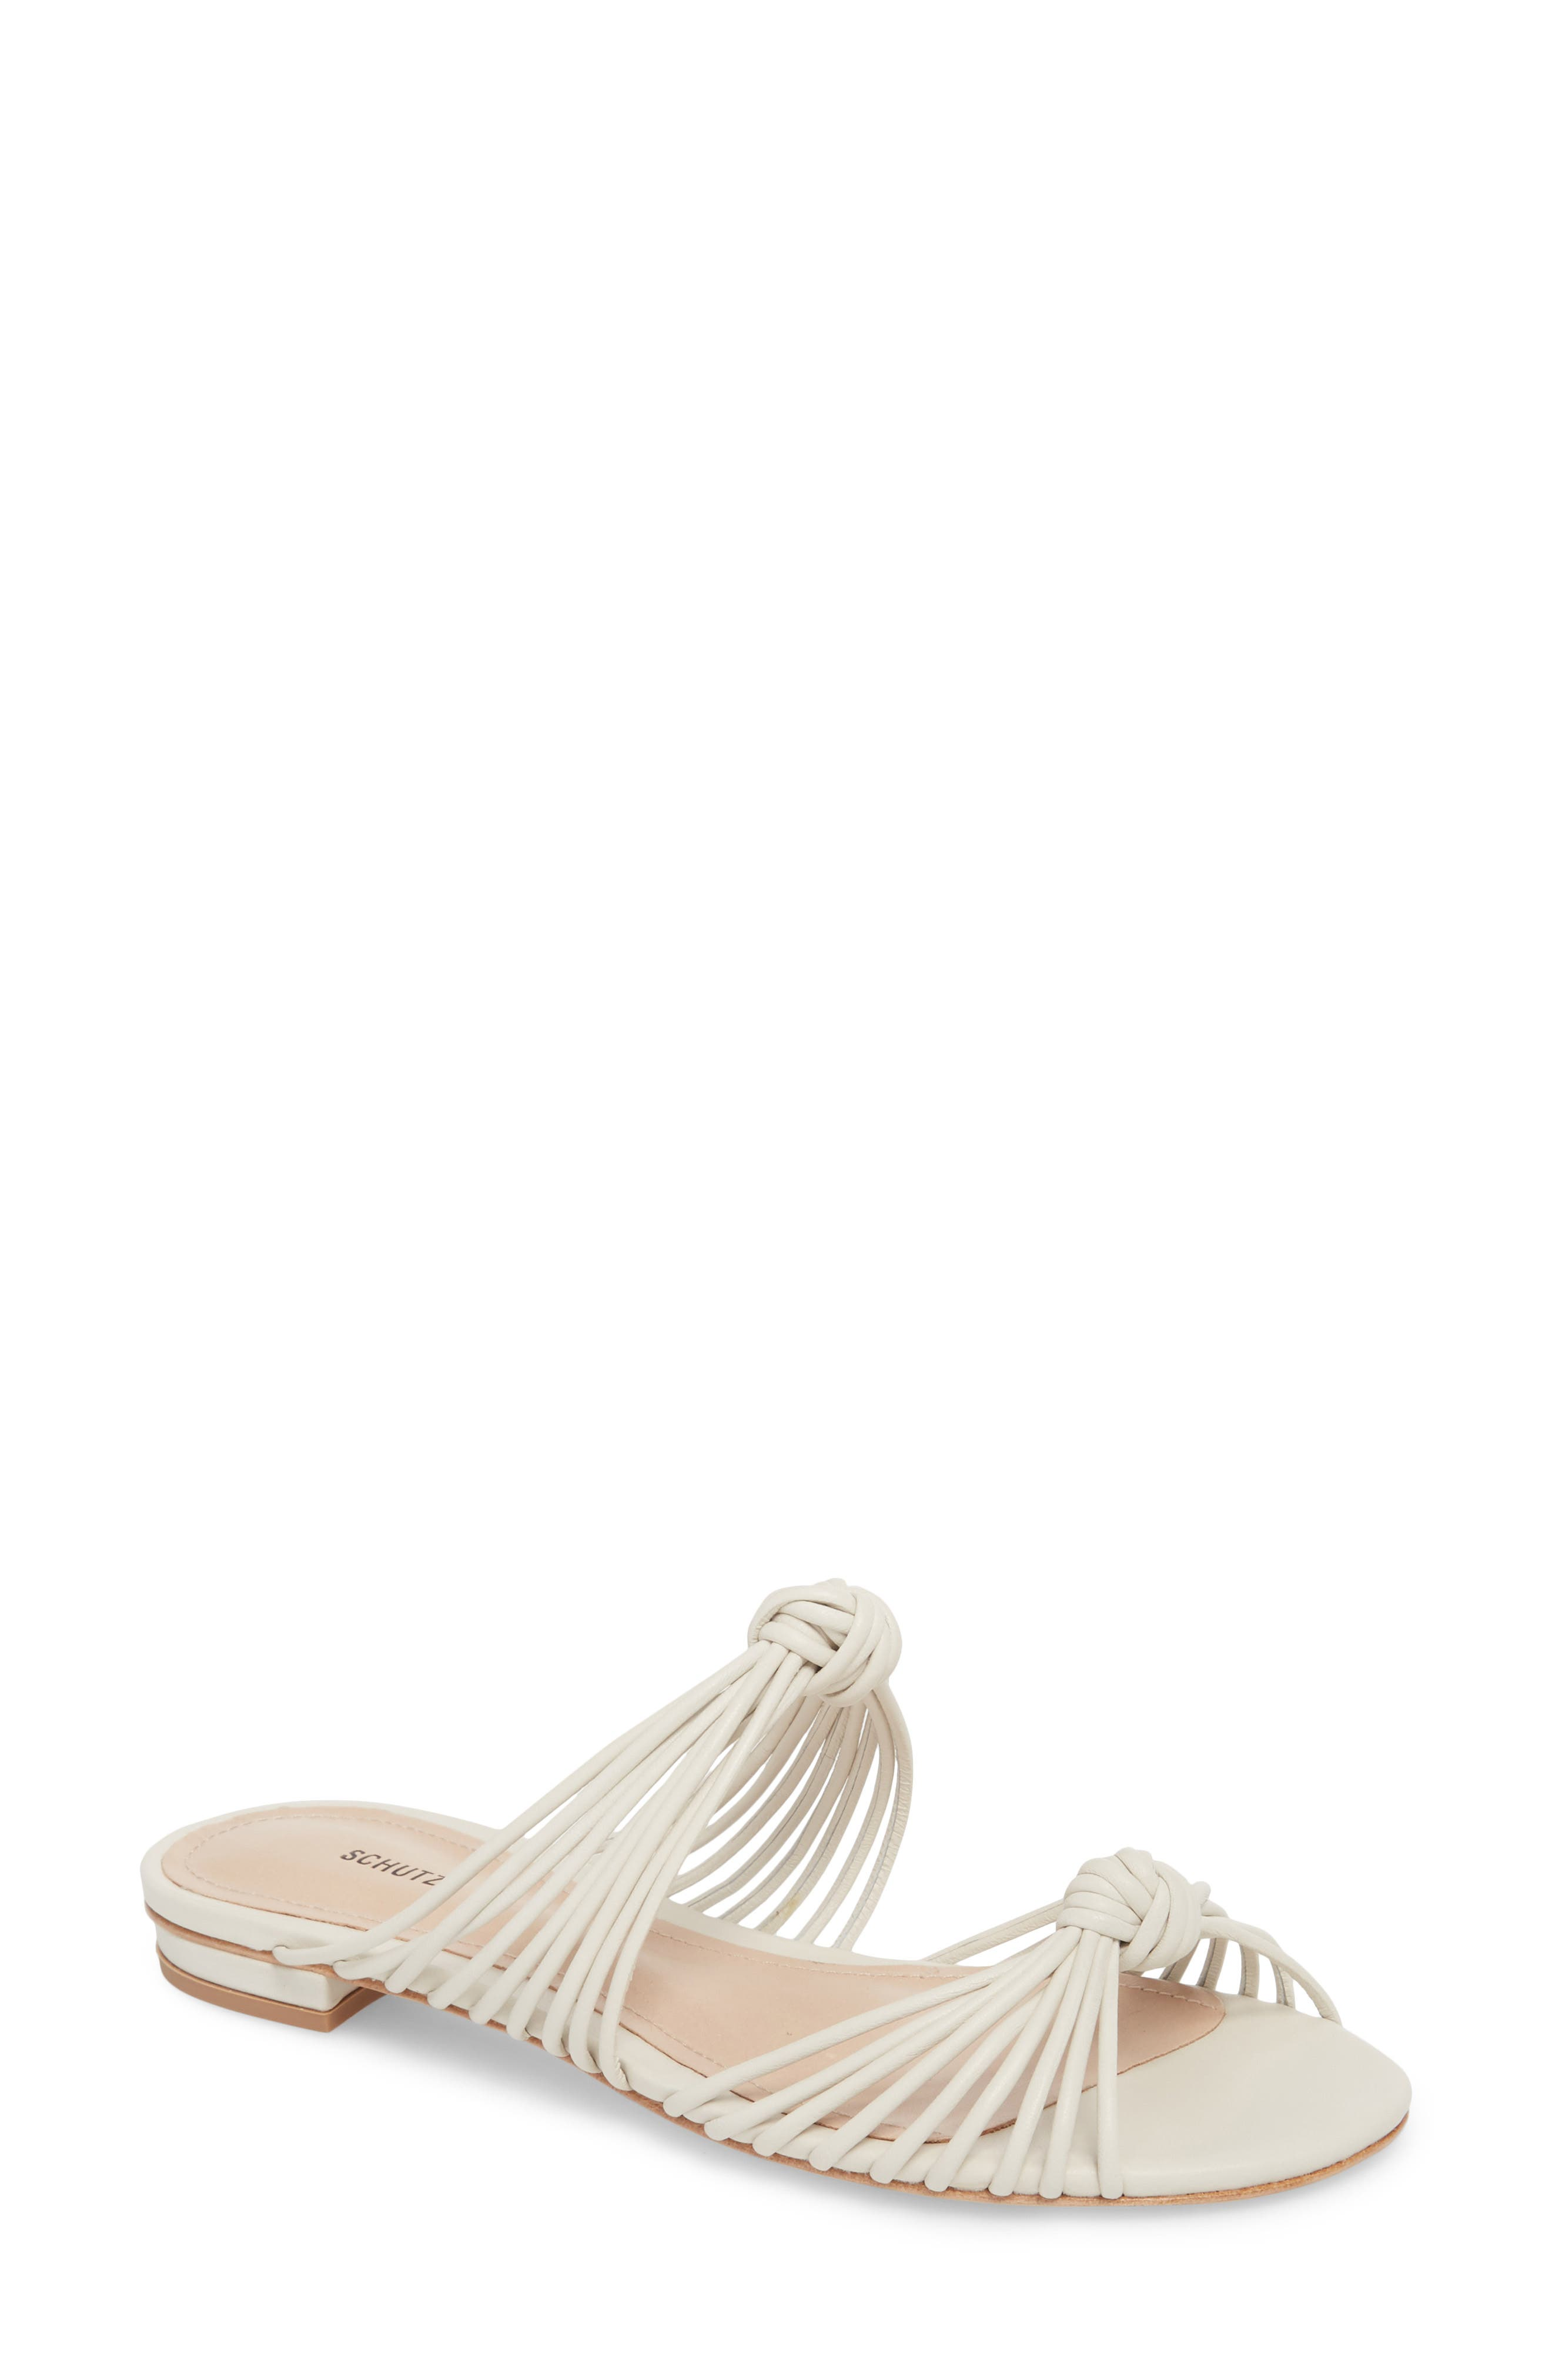 Nitiely Slide Sandal,                             Main thumbnail 1, color,                             Pearl Fabric